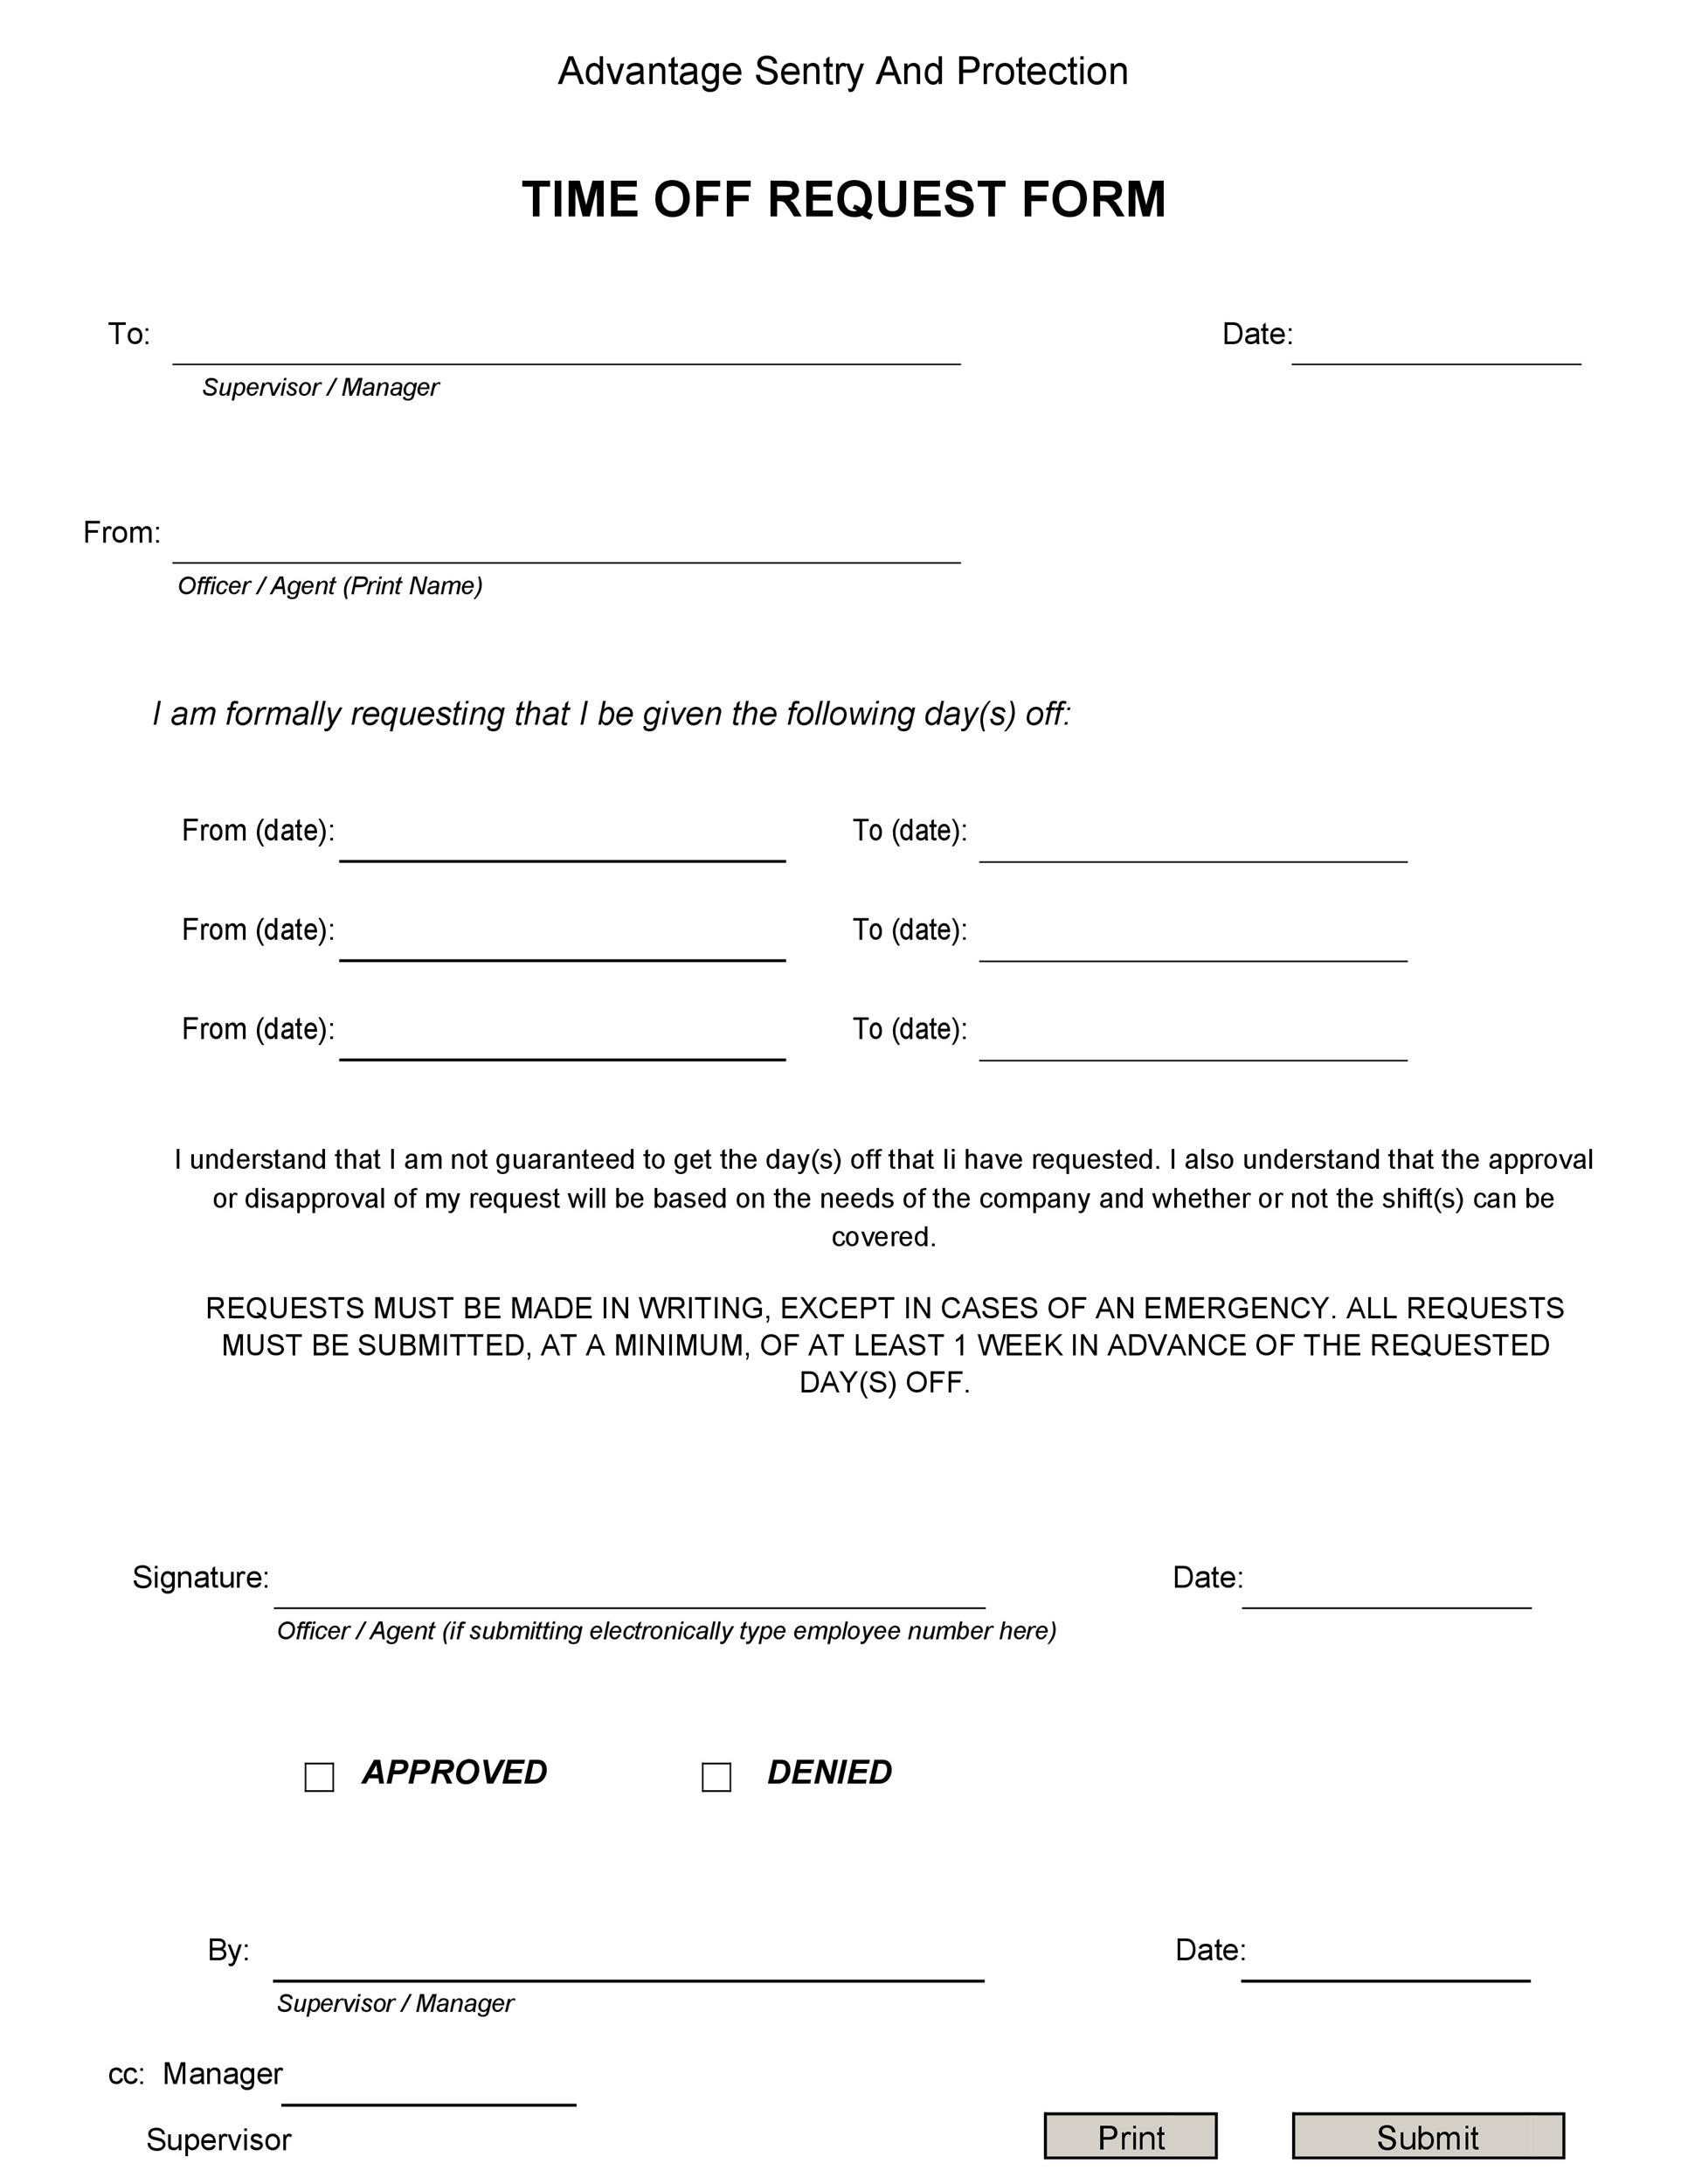 40+ Effective Time Off Request Forms  Templates - Template Lab - request for day off template